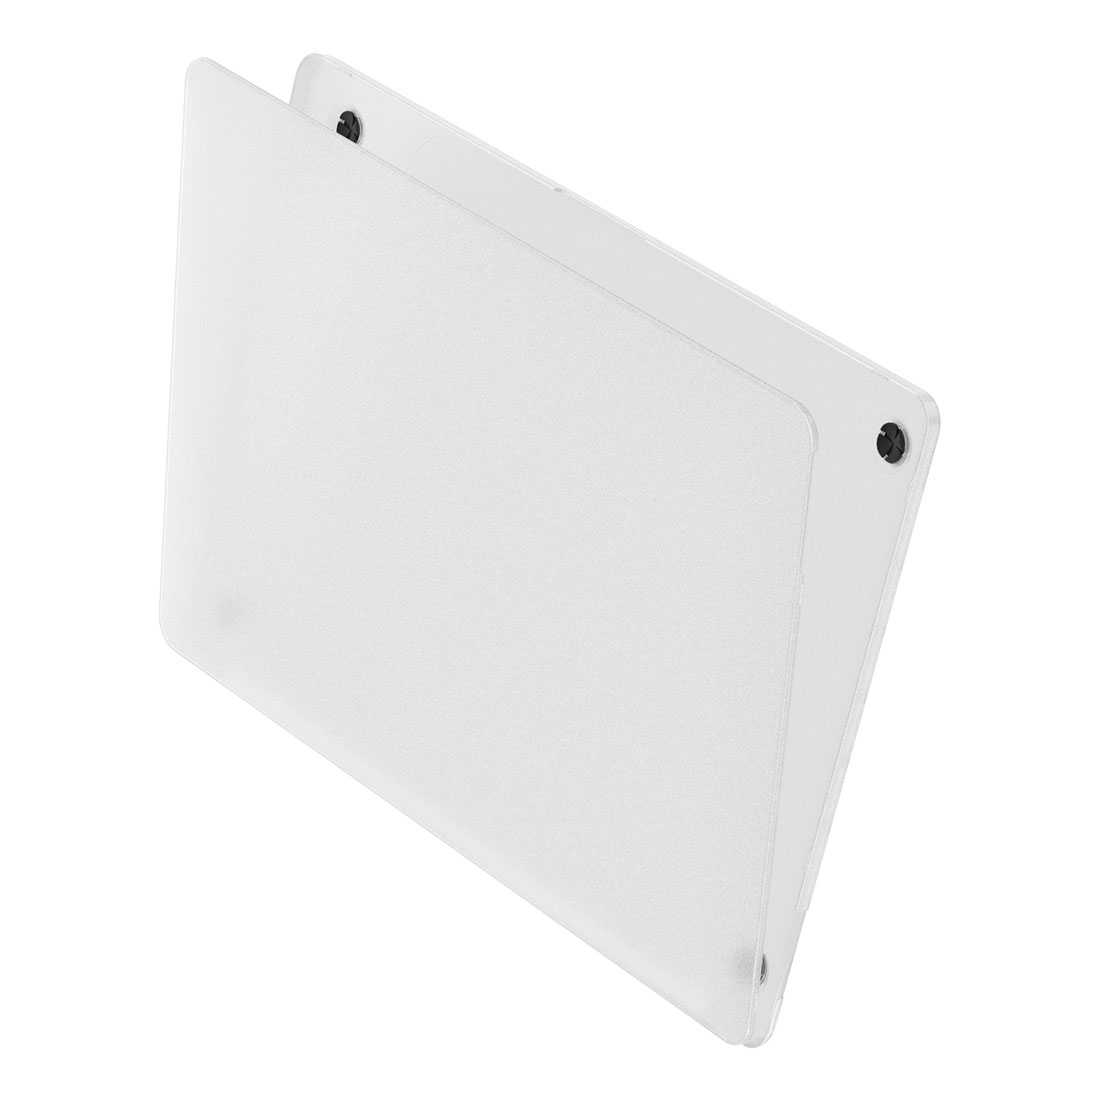 WIWU Laptop Matte Style Protective Case For Macbook 16 inch Touch Bar (White)